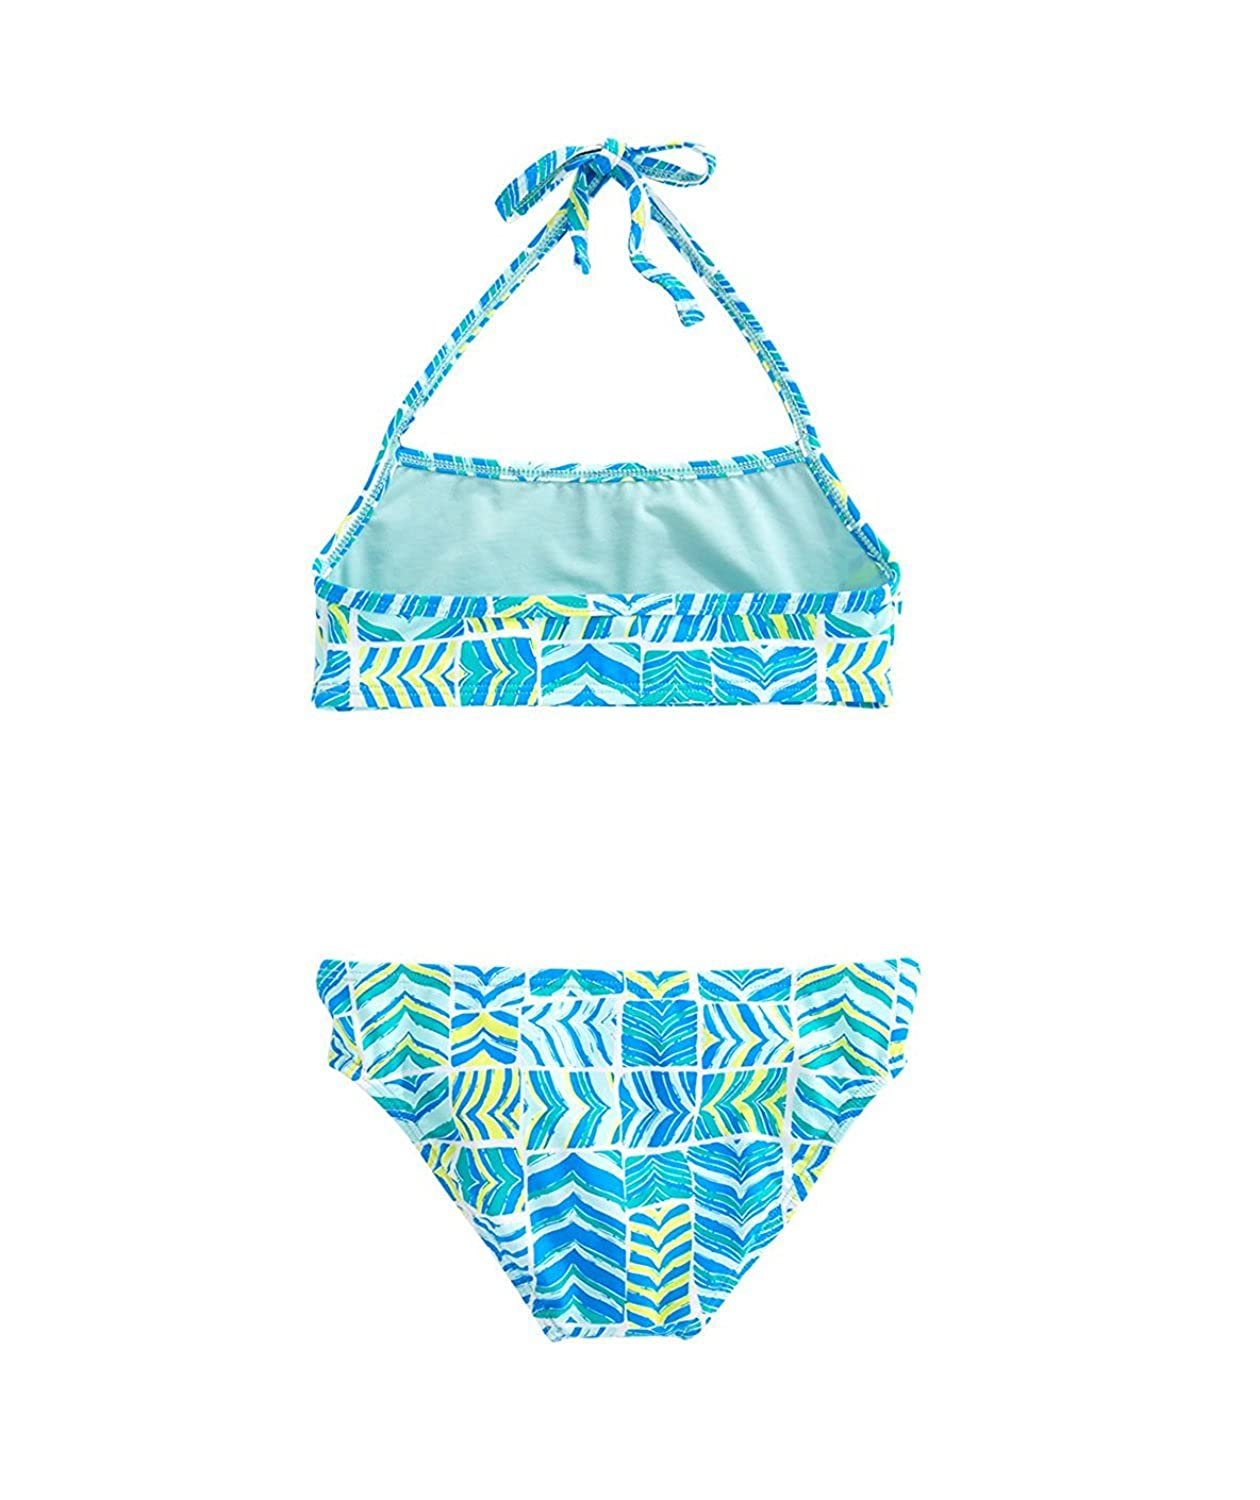 98998114252d2 Amazon.com: Vineyard Vines Girls Tankini Swim Suit Geo Whale Tail Bathing  Suit (XS): Clothing